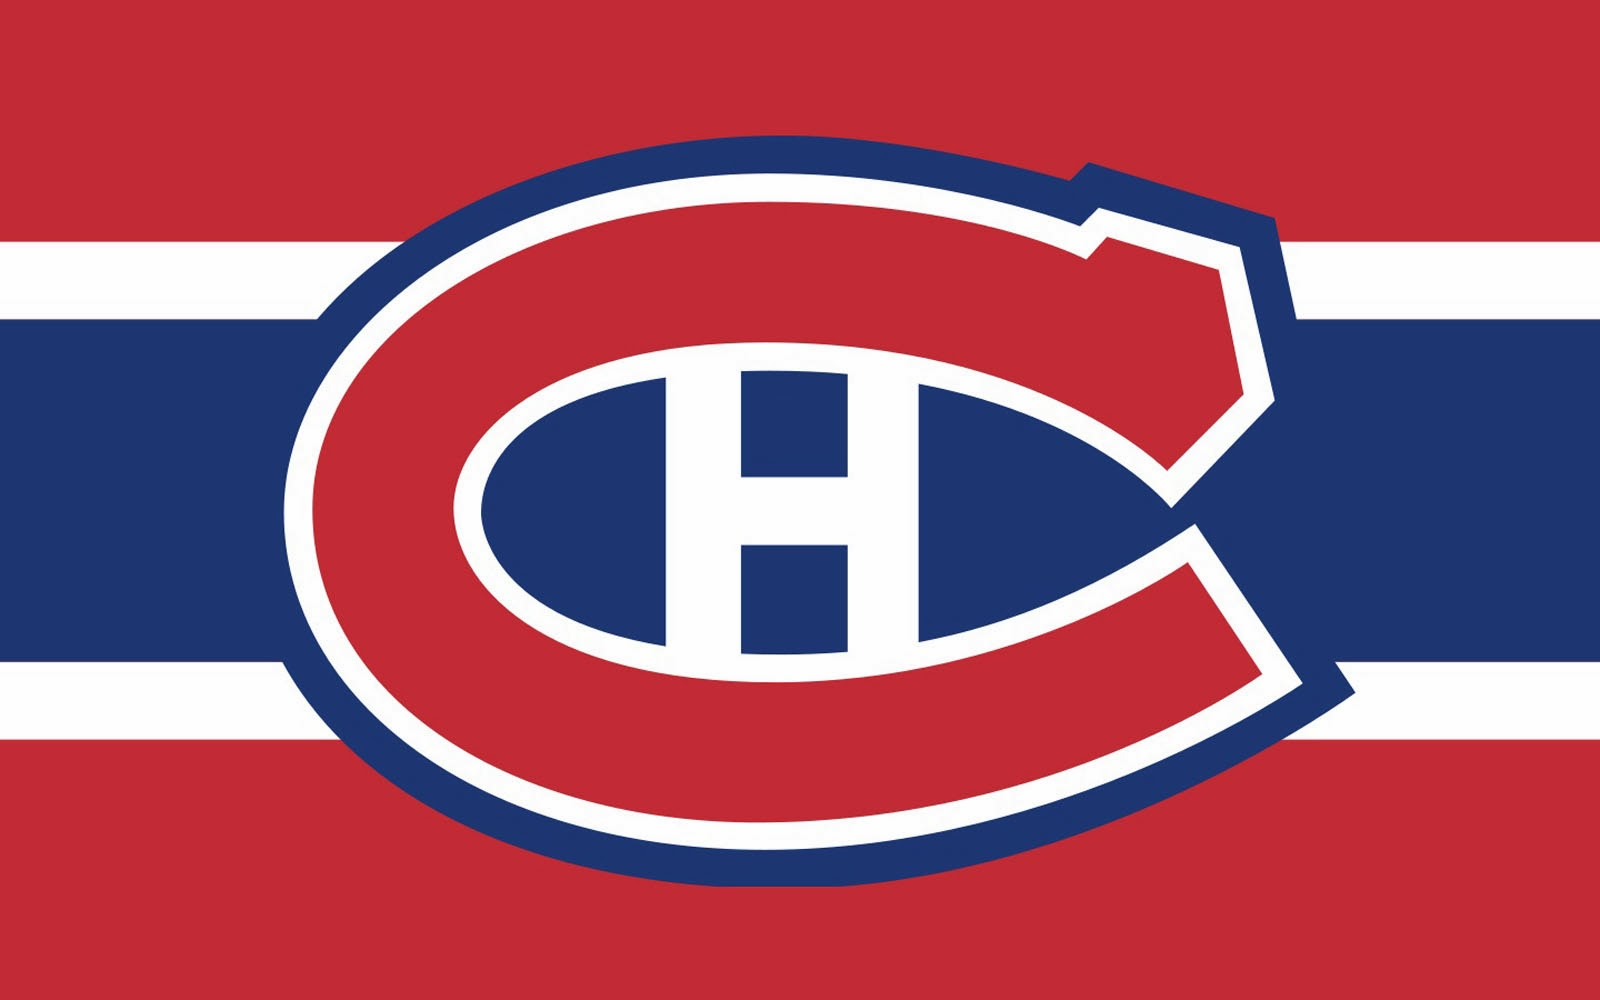 Apple Iphone Wallpaper Hd Download Wallpapers Montreal Canadiens Wallpapers